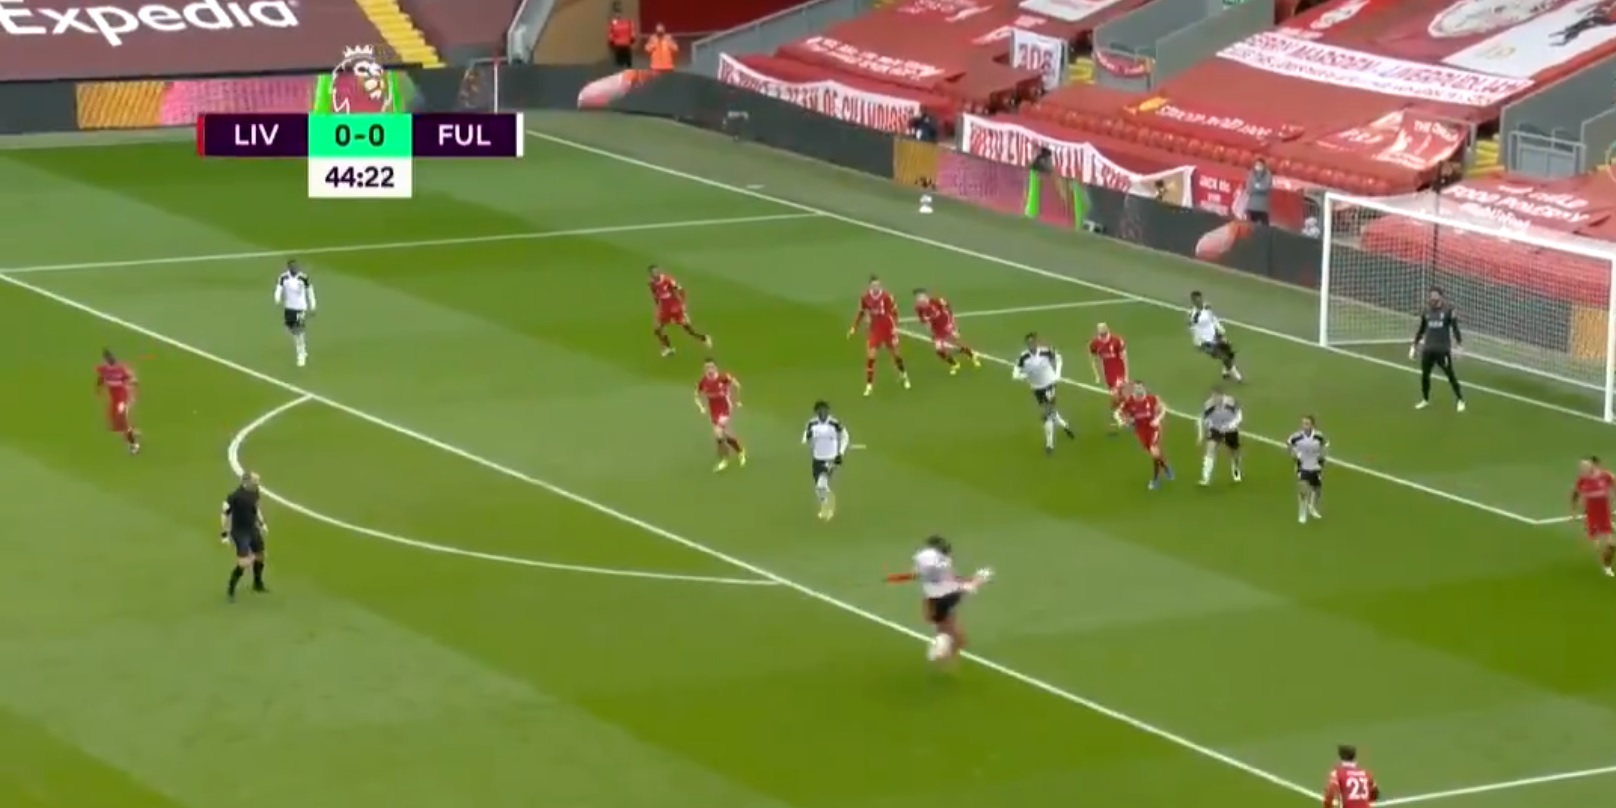 (Video) Fulham take the lead before stroke of half-time after Salah error